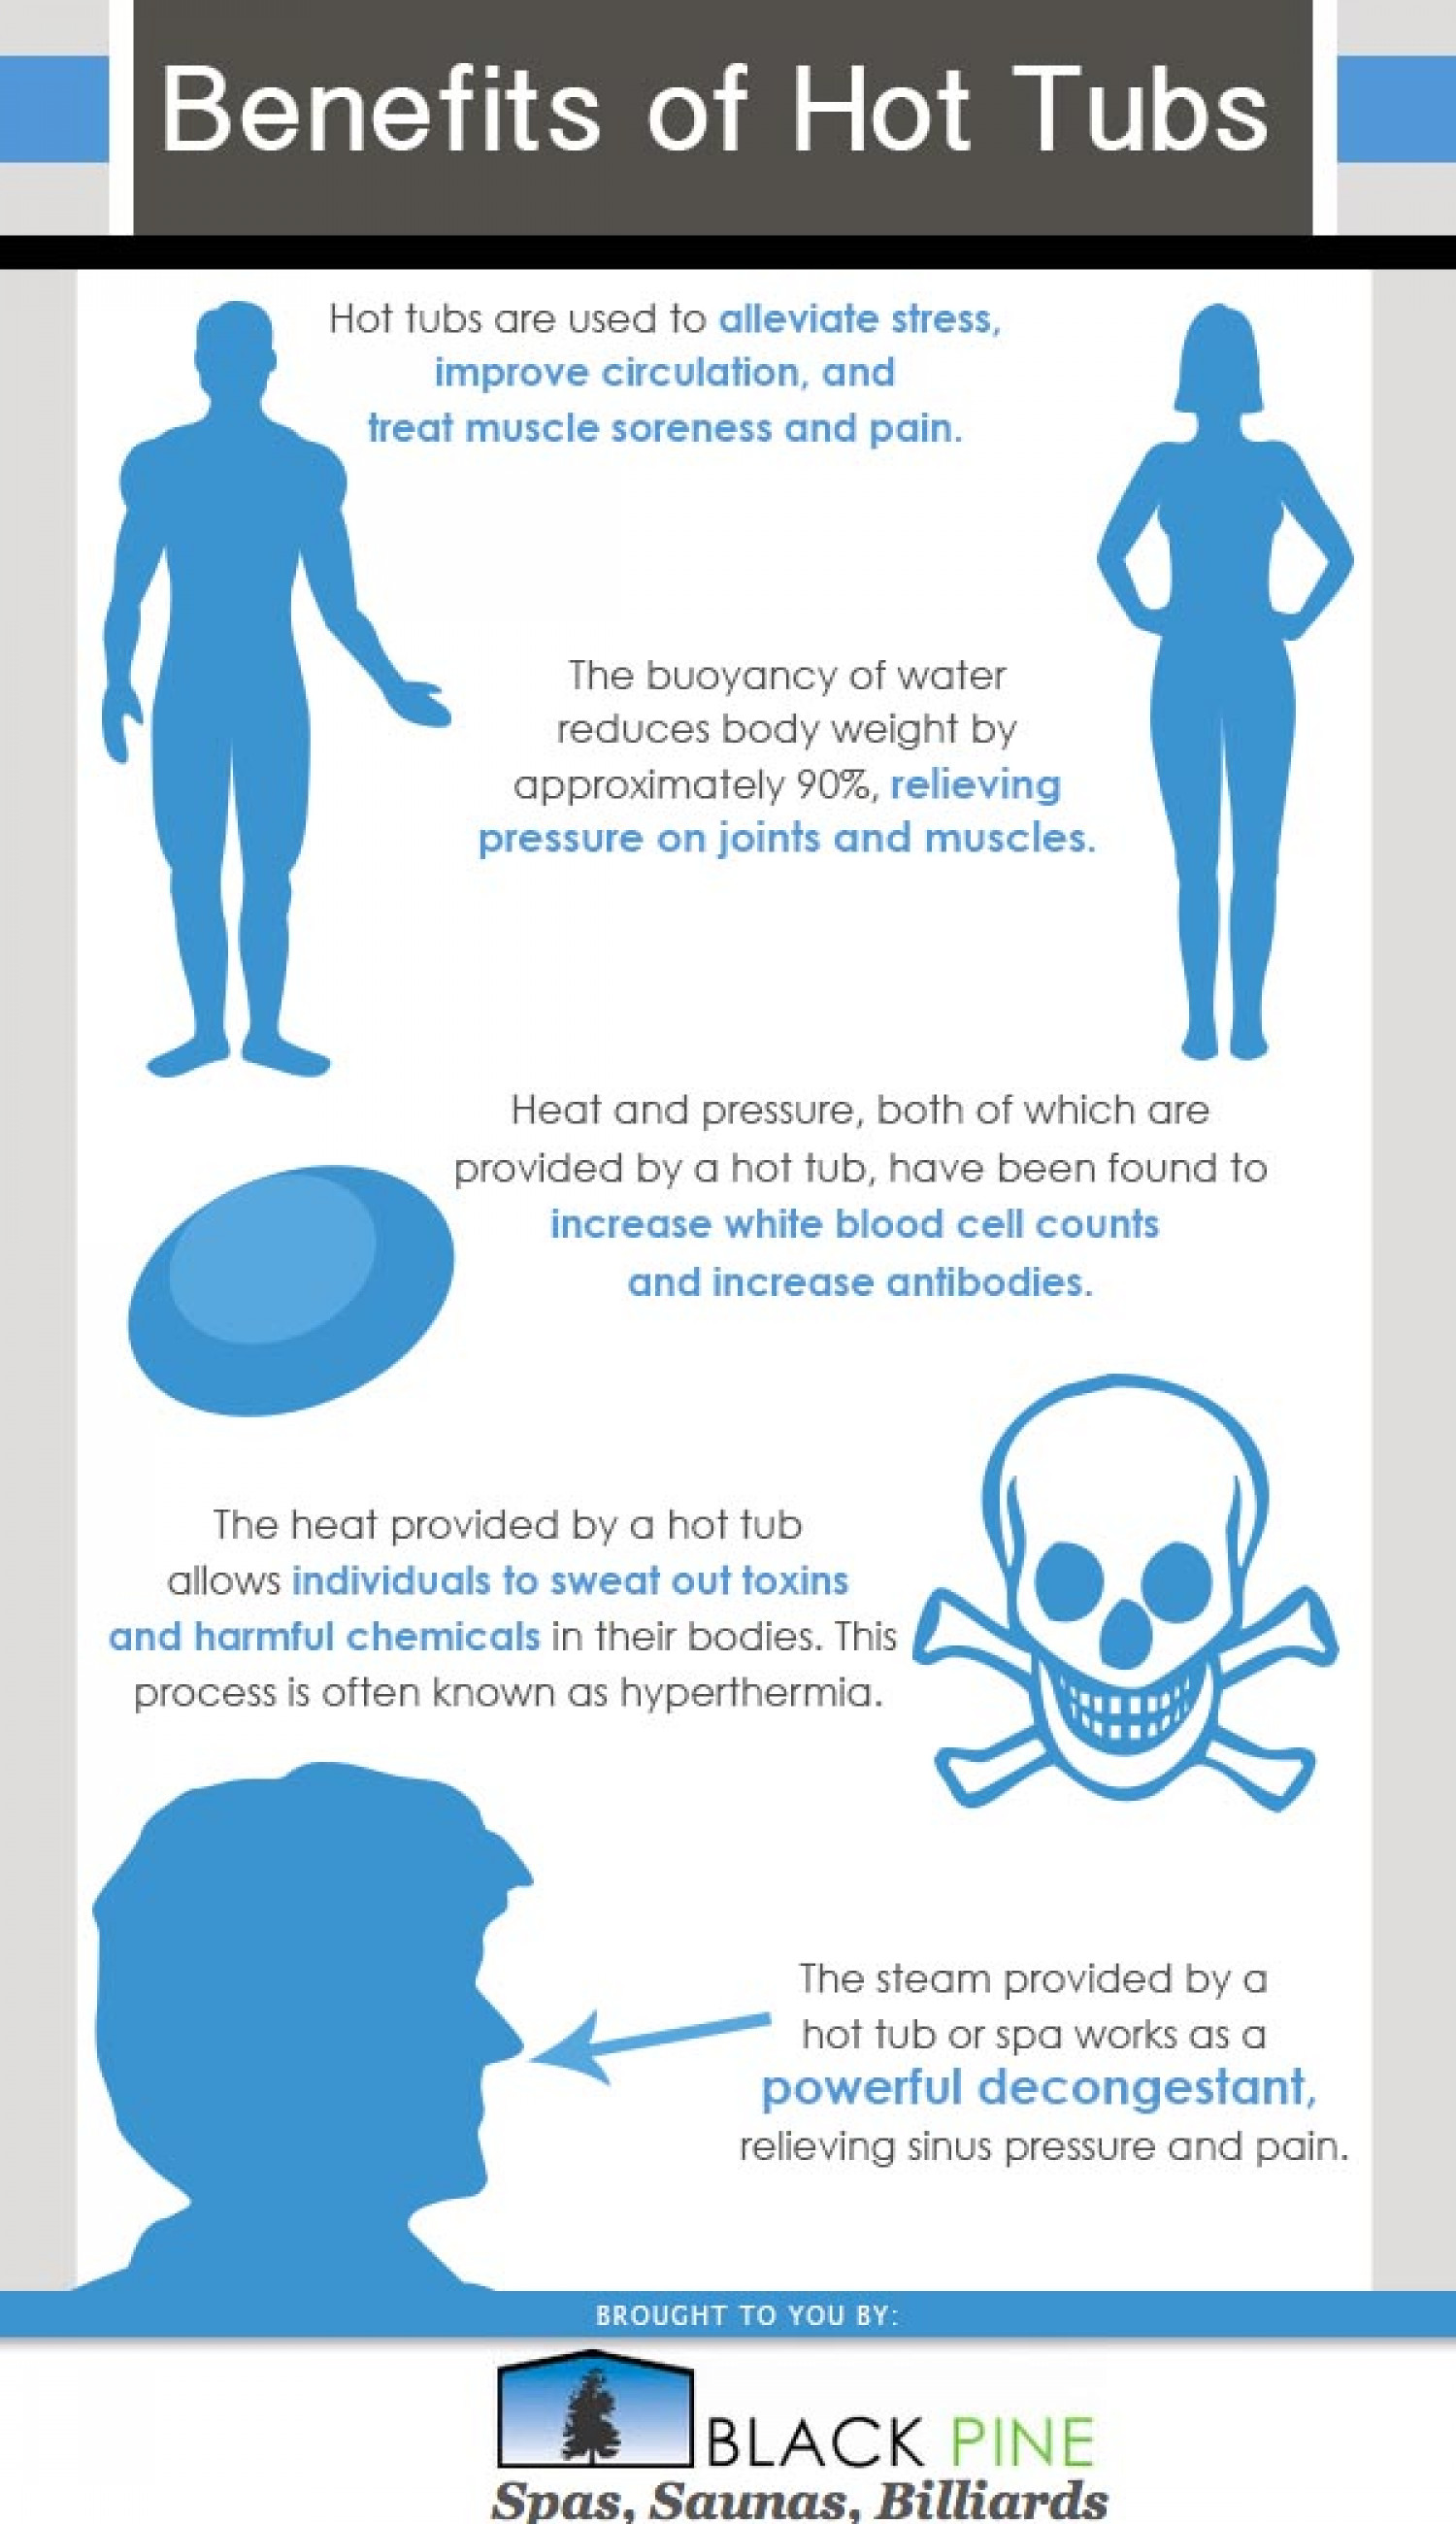 Benefits of Hot Tubs Infographic